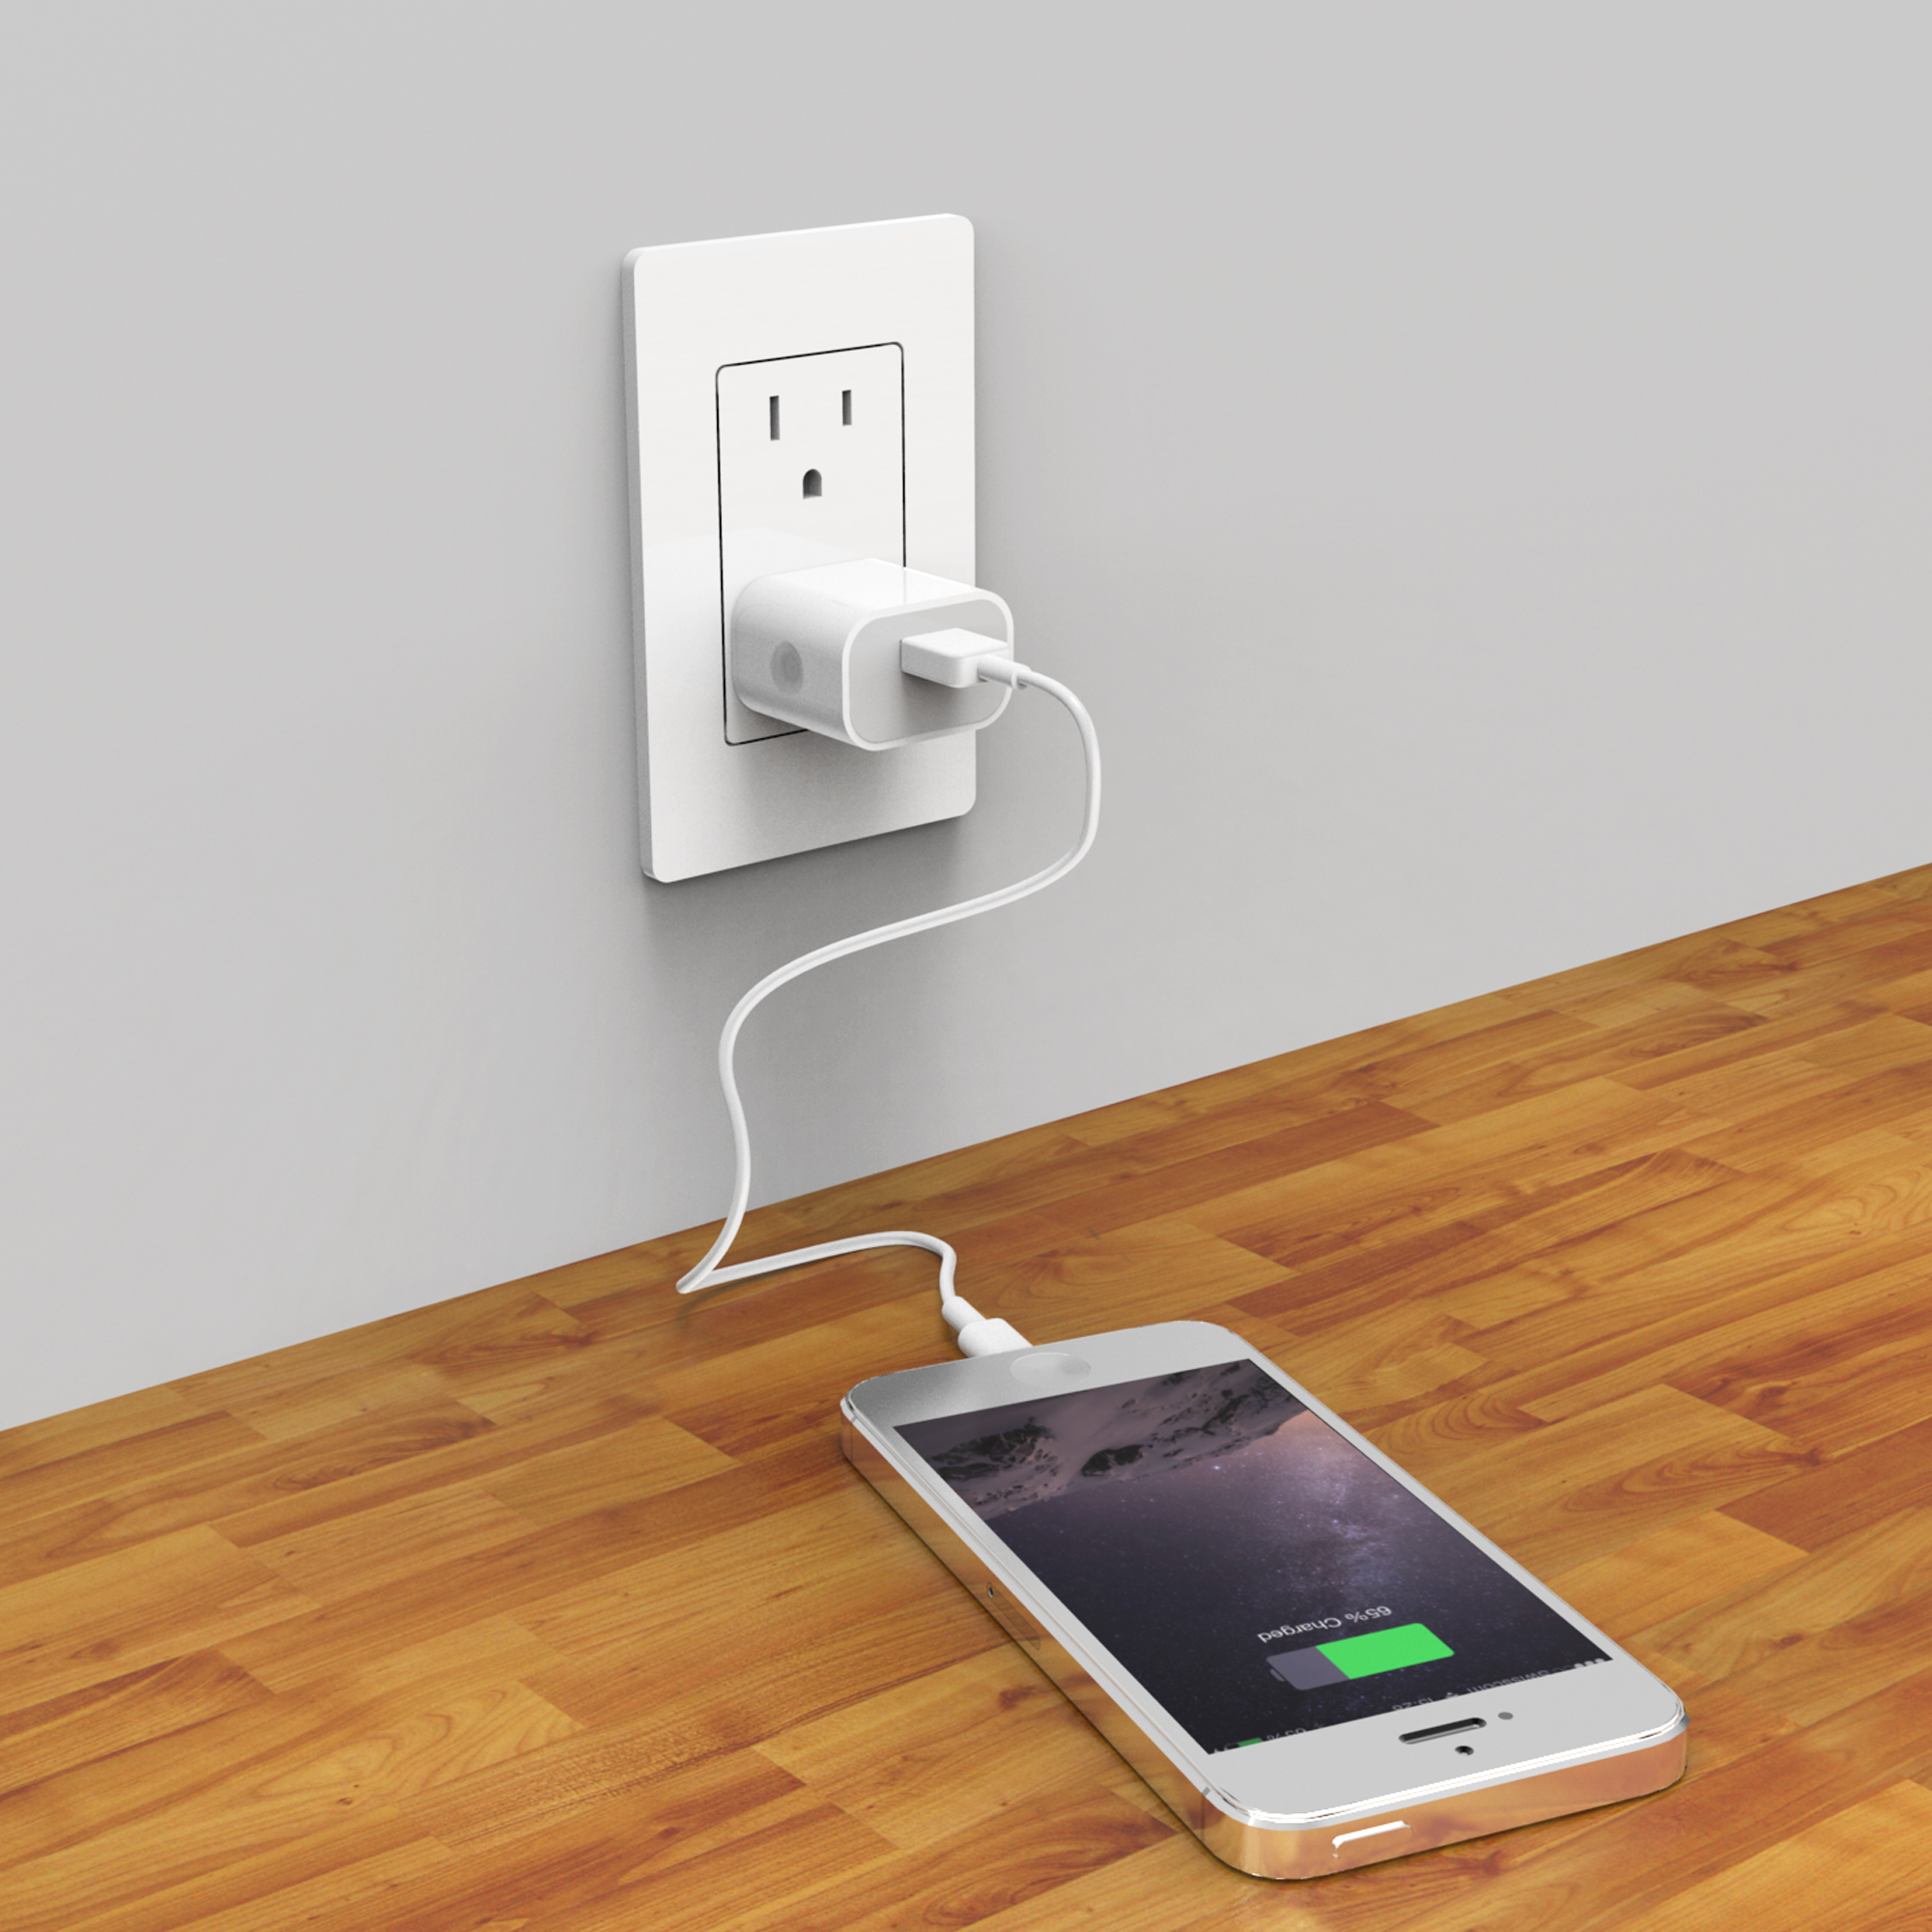 Why does my cell phone charger get so hot? - Information Specialists